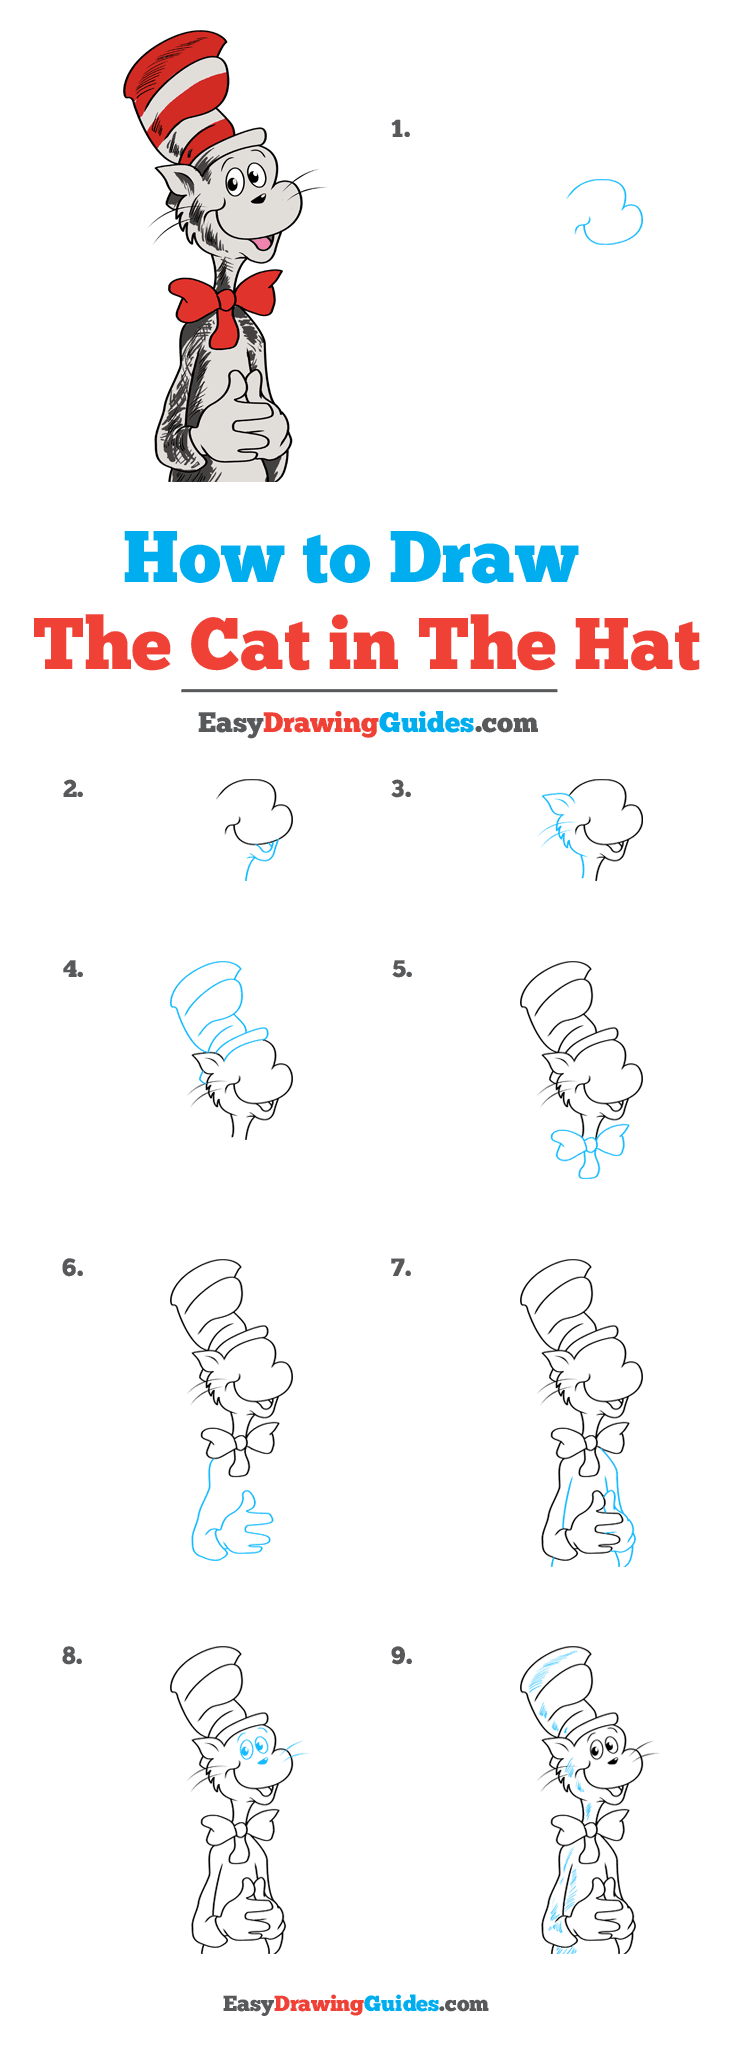 How to Draw The Cat in The Hat Step by Step Tutorial Image